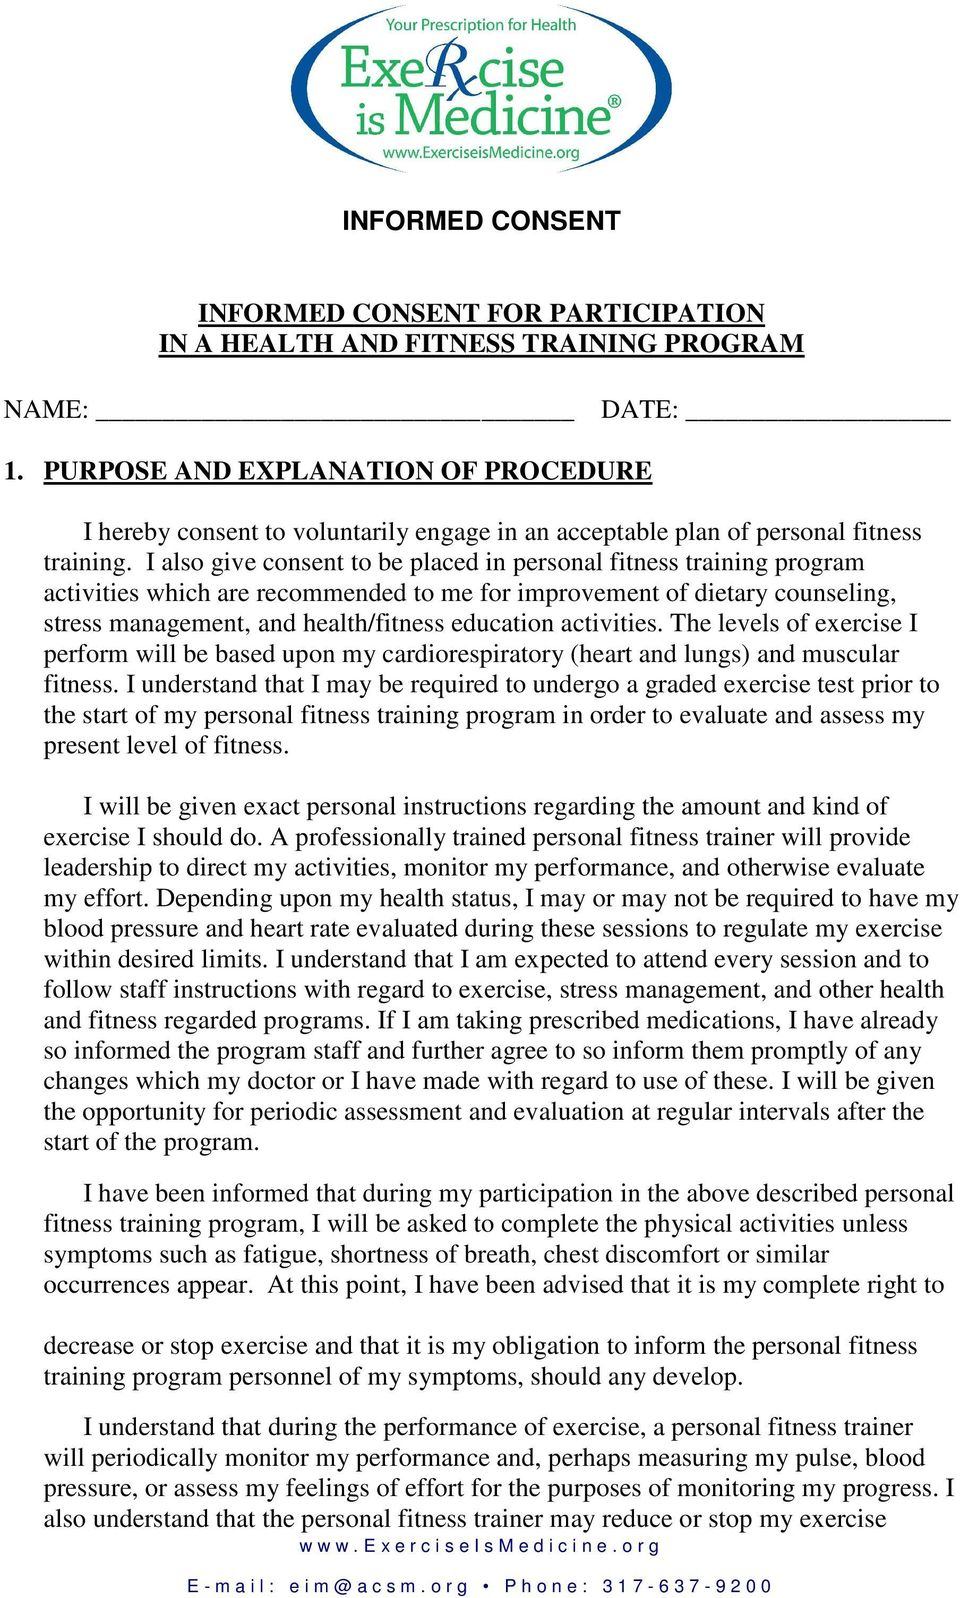 I also give consent to be placed in personal fitness training program activities which are recommended to me for improvement of dietary counseling, stress management, and health/fitness education